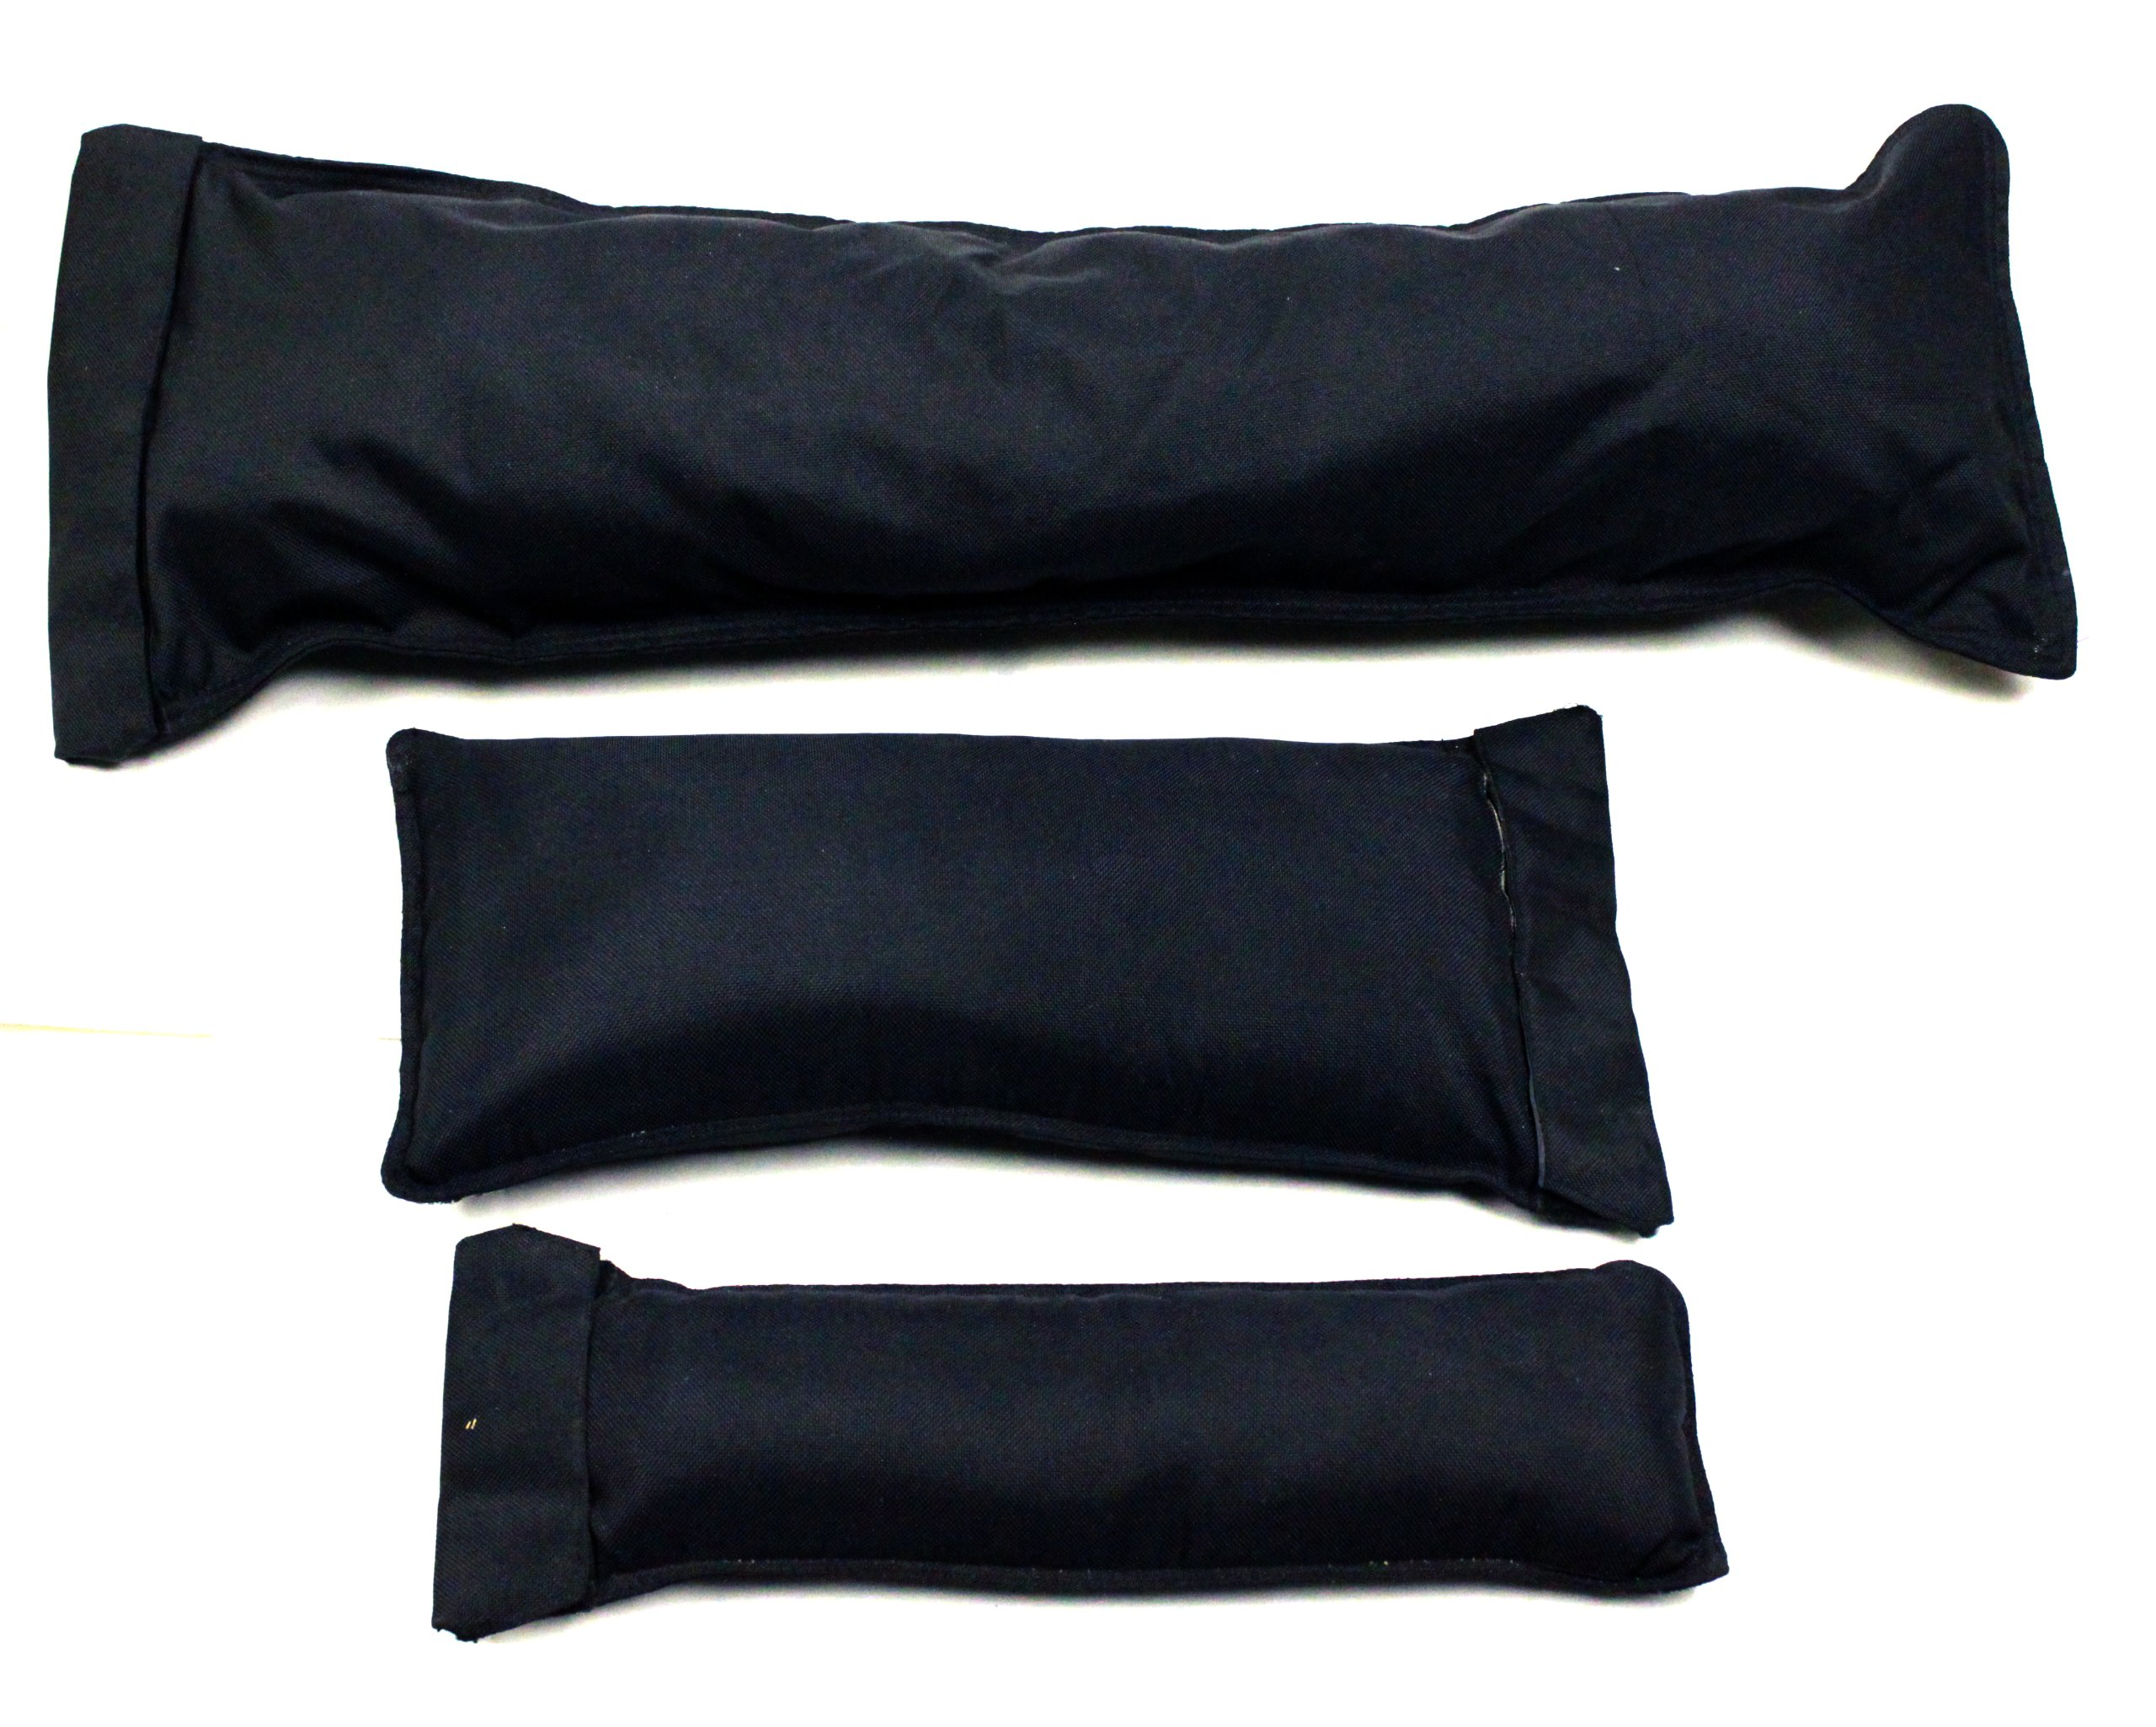 Ader Filler Bags for Sand Bags- (1 Small, 1 Medium, 1 Large) by Ader Sporting Goods (Image #1)